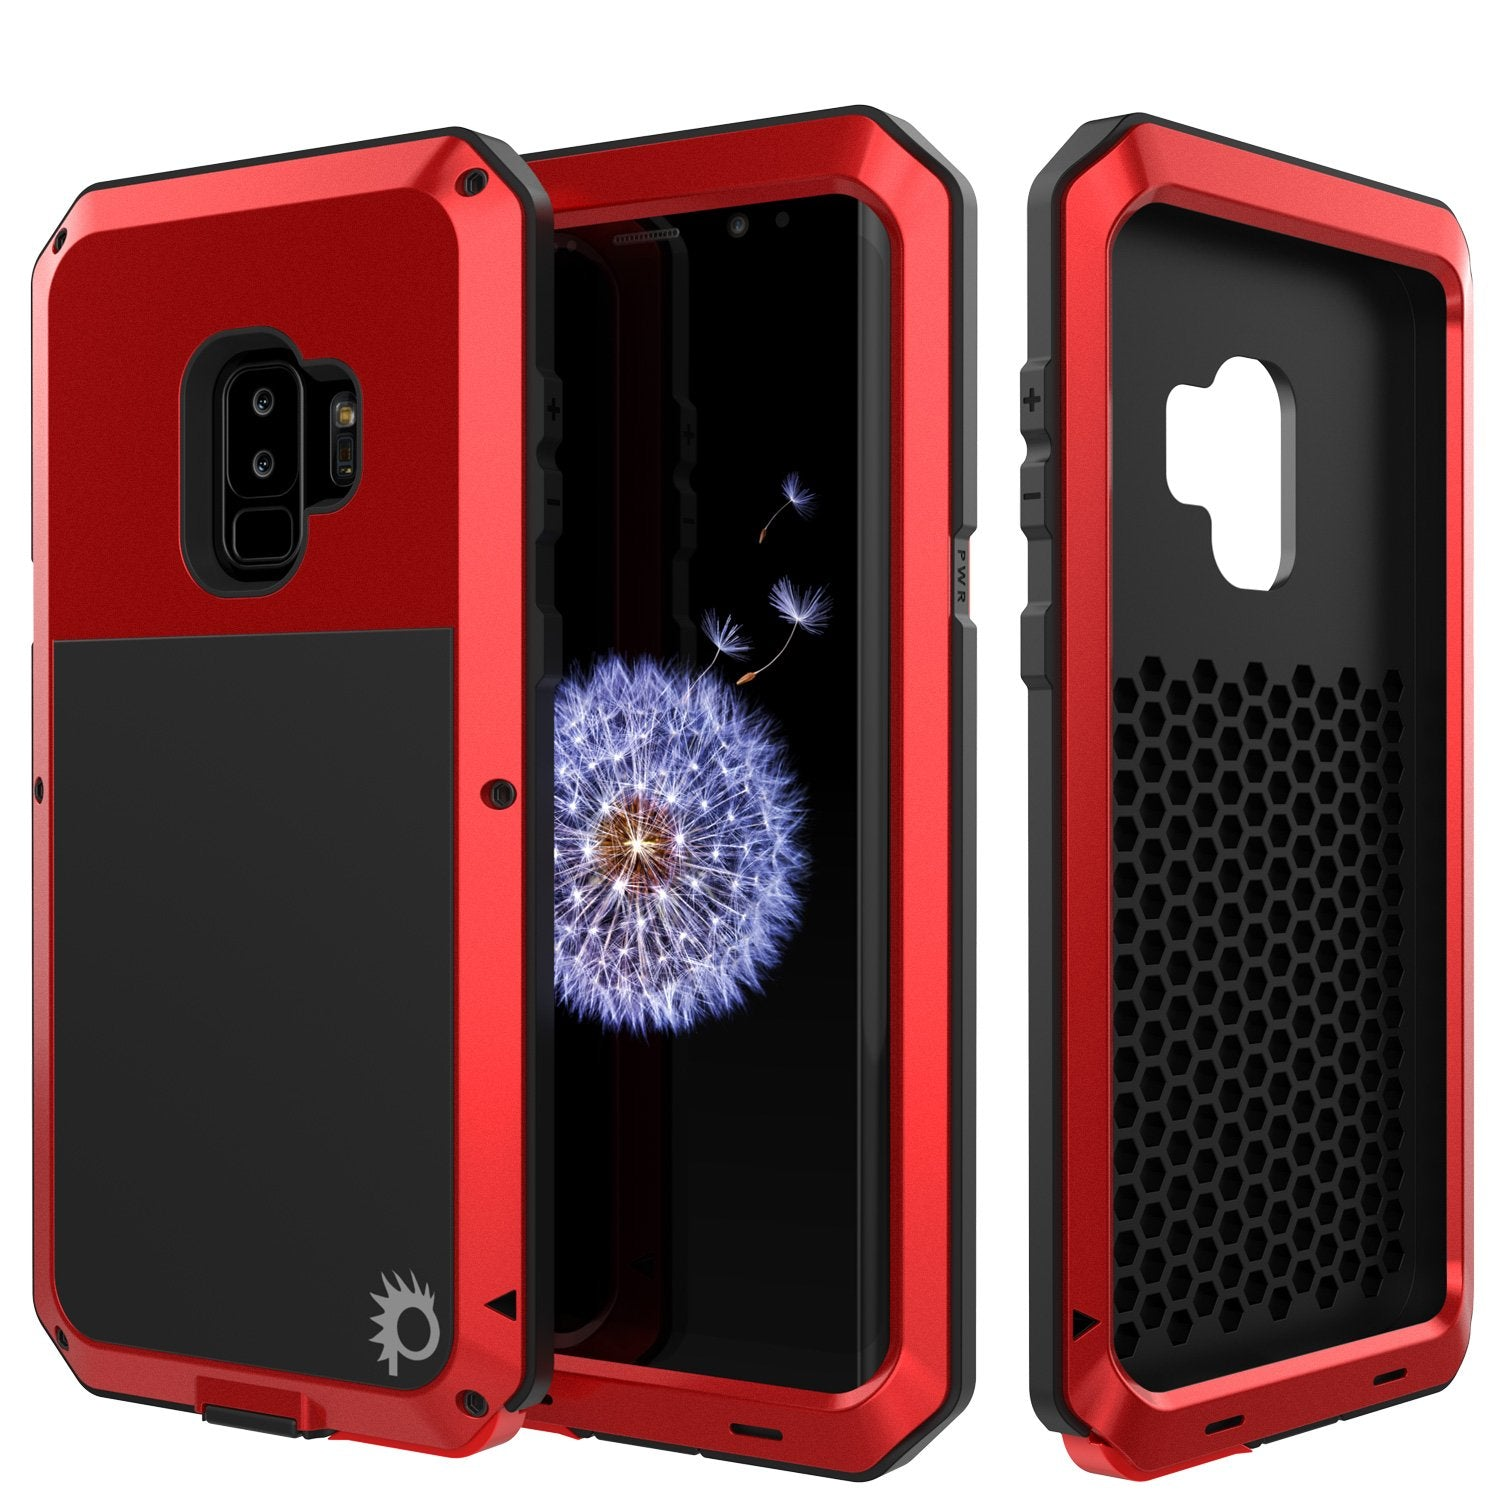 Galaxy S9 Plus Metal Case, Heavy Duty Military Grade Rugged Armor Cover [shock proof] Hybrid Full Body Hard Aluminum & TPU Design [non slip] W/ Prime Drop Protection for Samsung Galaxy S9 Plus [Red]